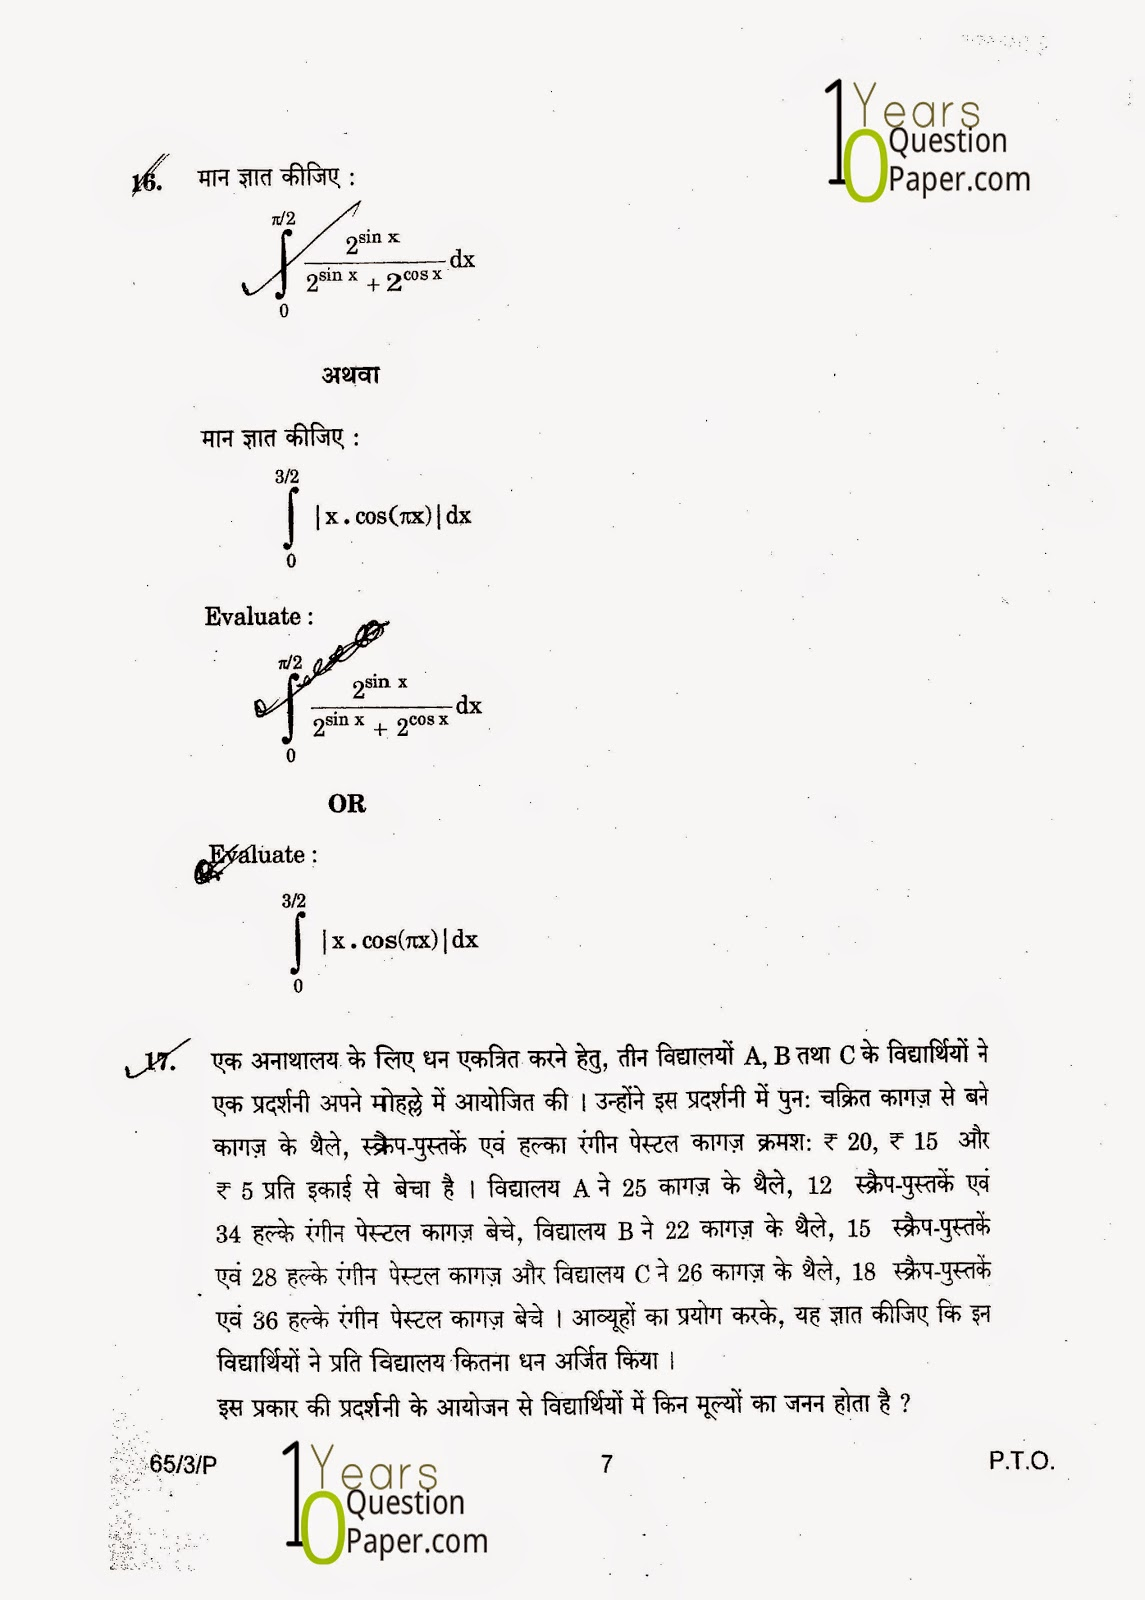 cbse class 12th 2015 Mathematics question paper